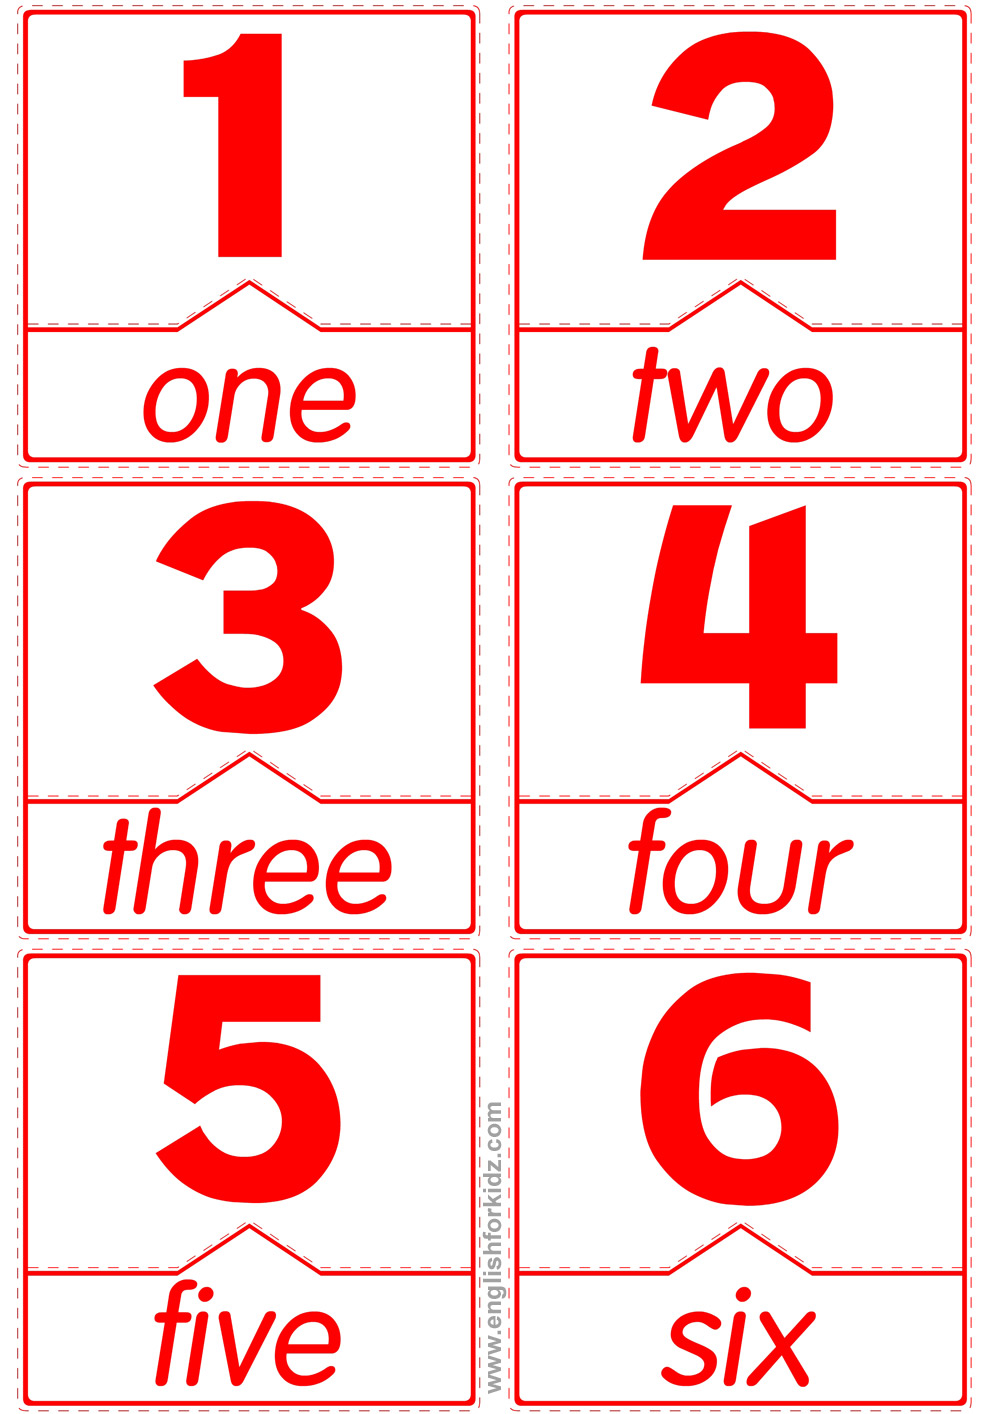 photo about Printable Number Flashcards named Matching Phrases in direction of Figures Flashcards